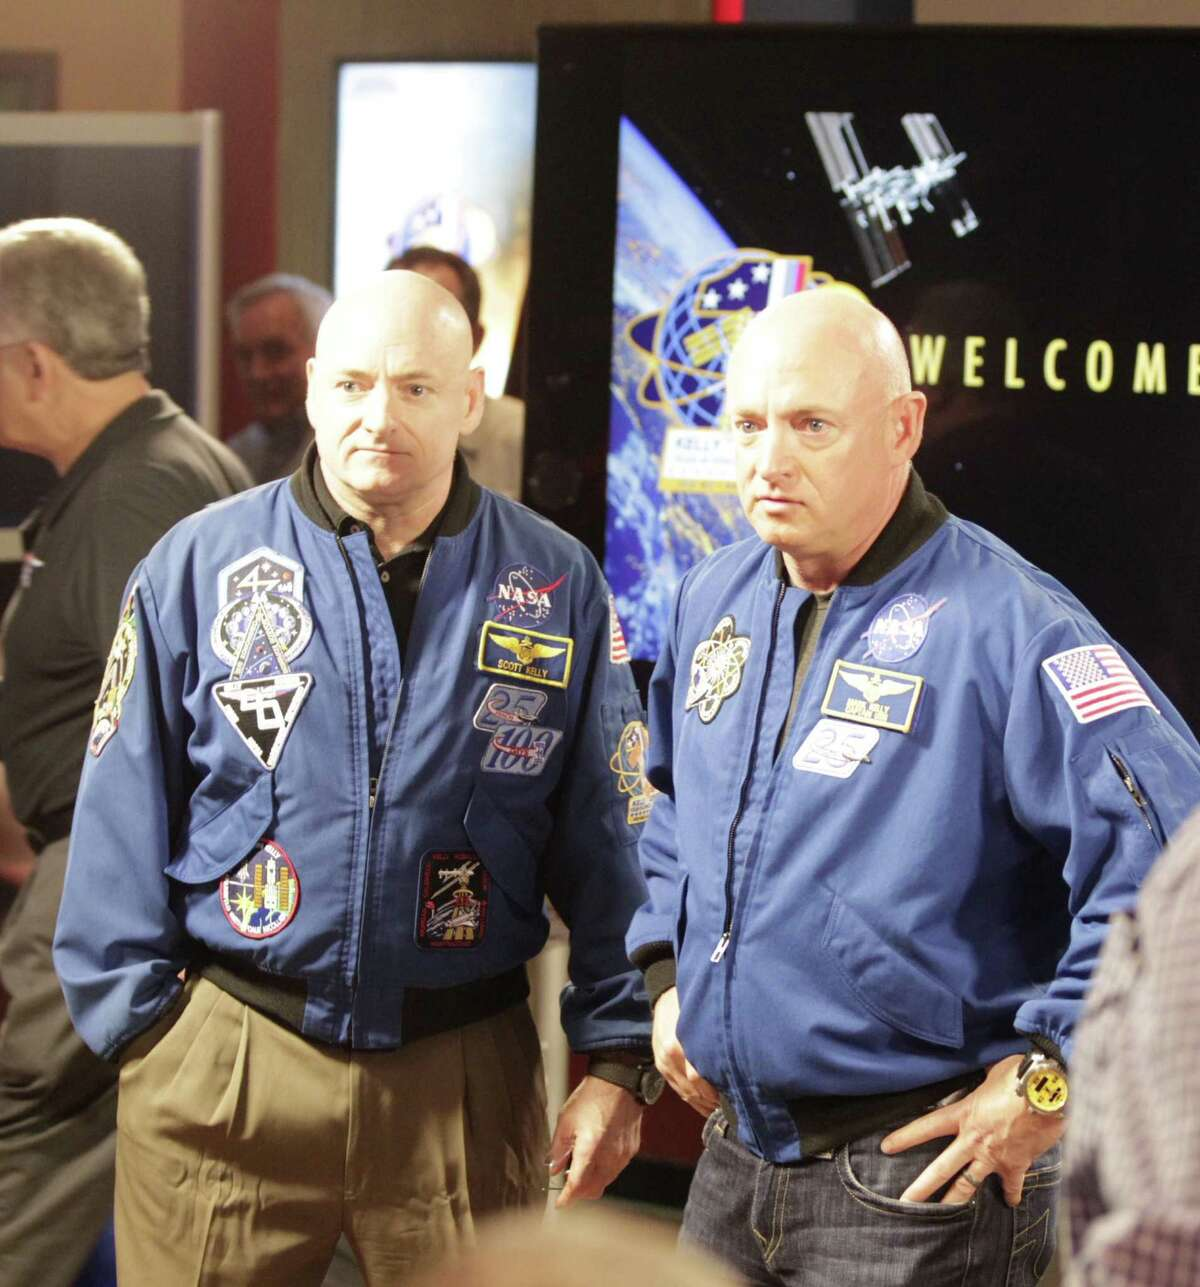 Scott Kelly left, and his twin brother Mark Kelly right, are pictured during a photo-op before a press conference at Johnson Space Center, Friday, March 4, 2016. Scott Kelly just completed nearly a year long stay aboard the International Space Station.